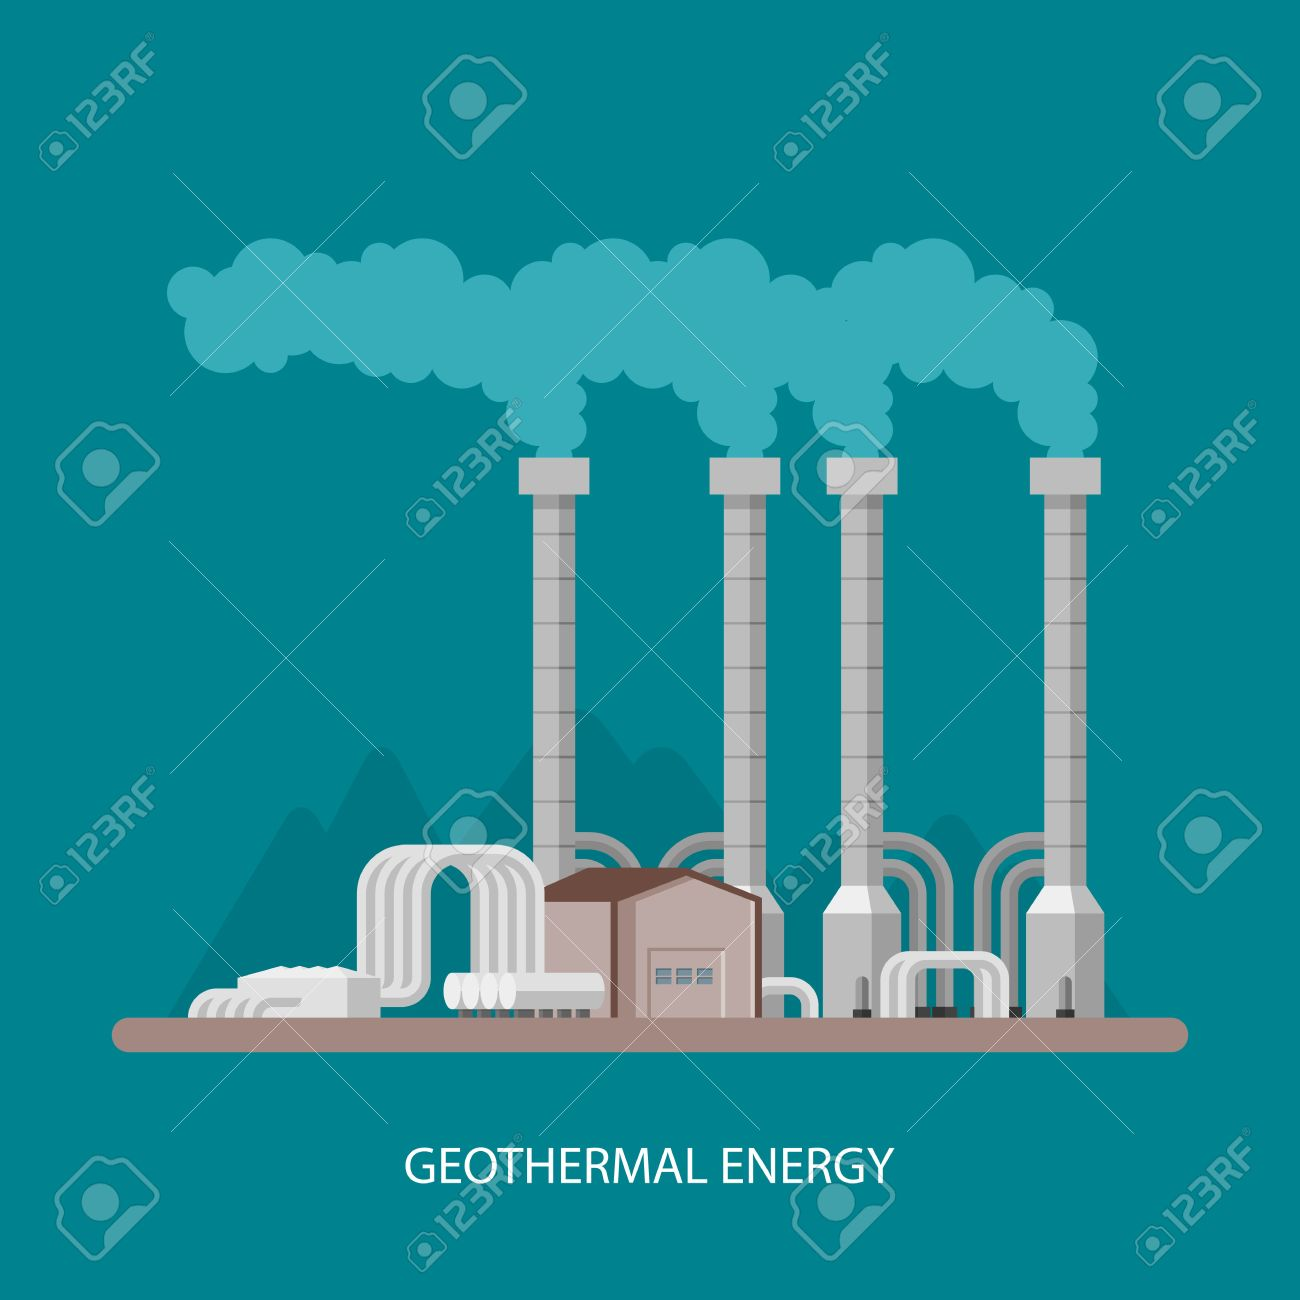 Geothermal Power Plant And Factory Geothermal Energy Industrial 1300x1300